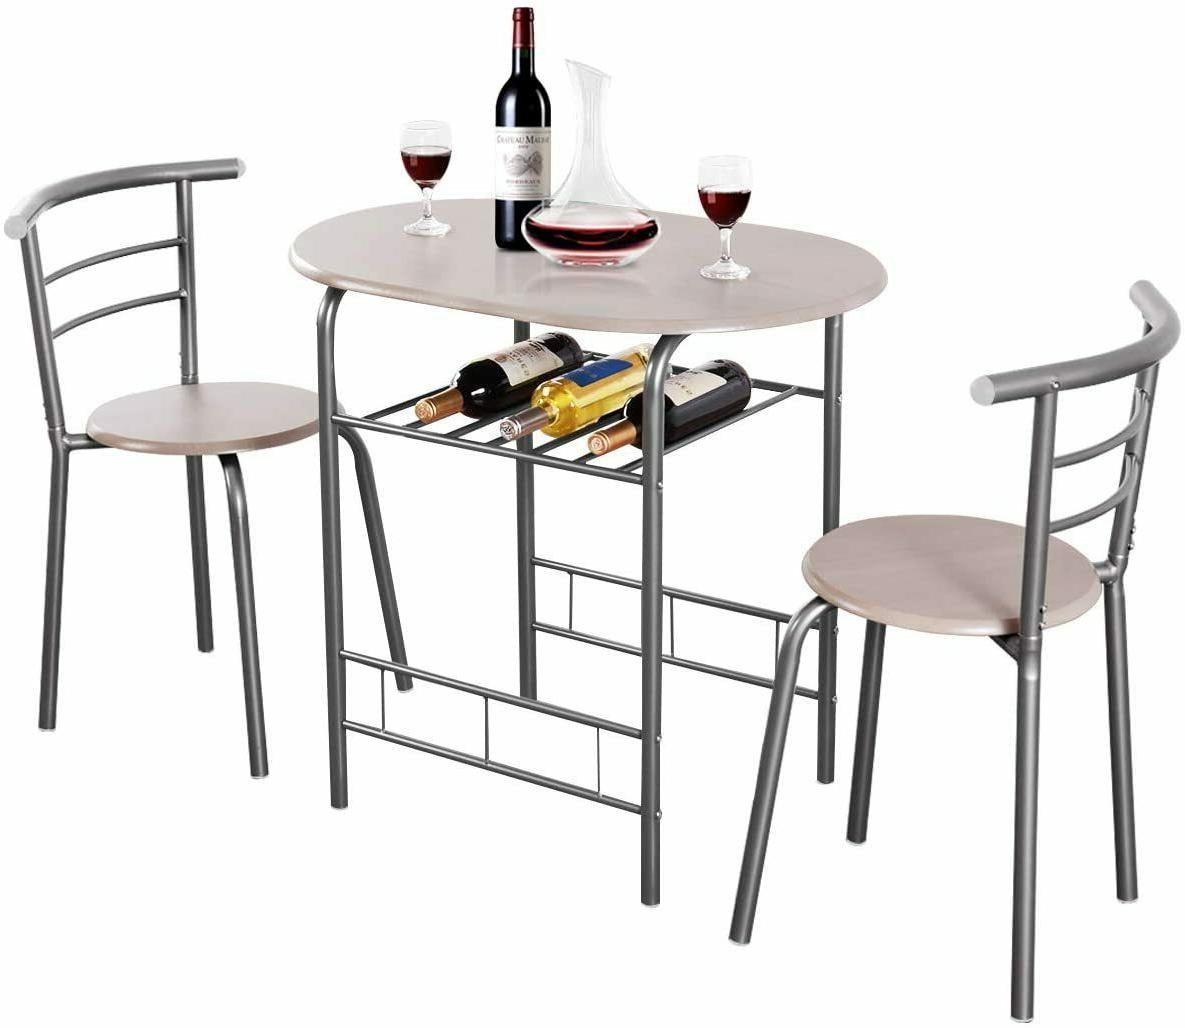 Dining Table 2 3 PCS Bistro